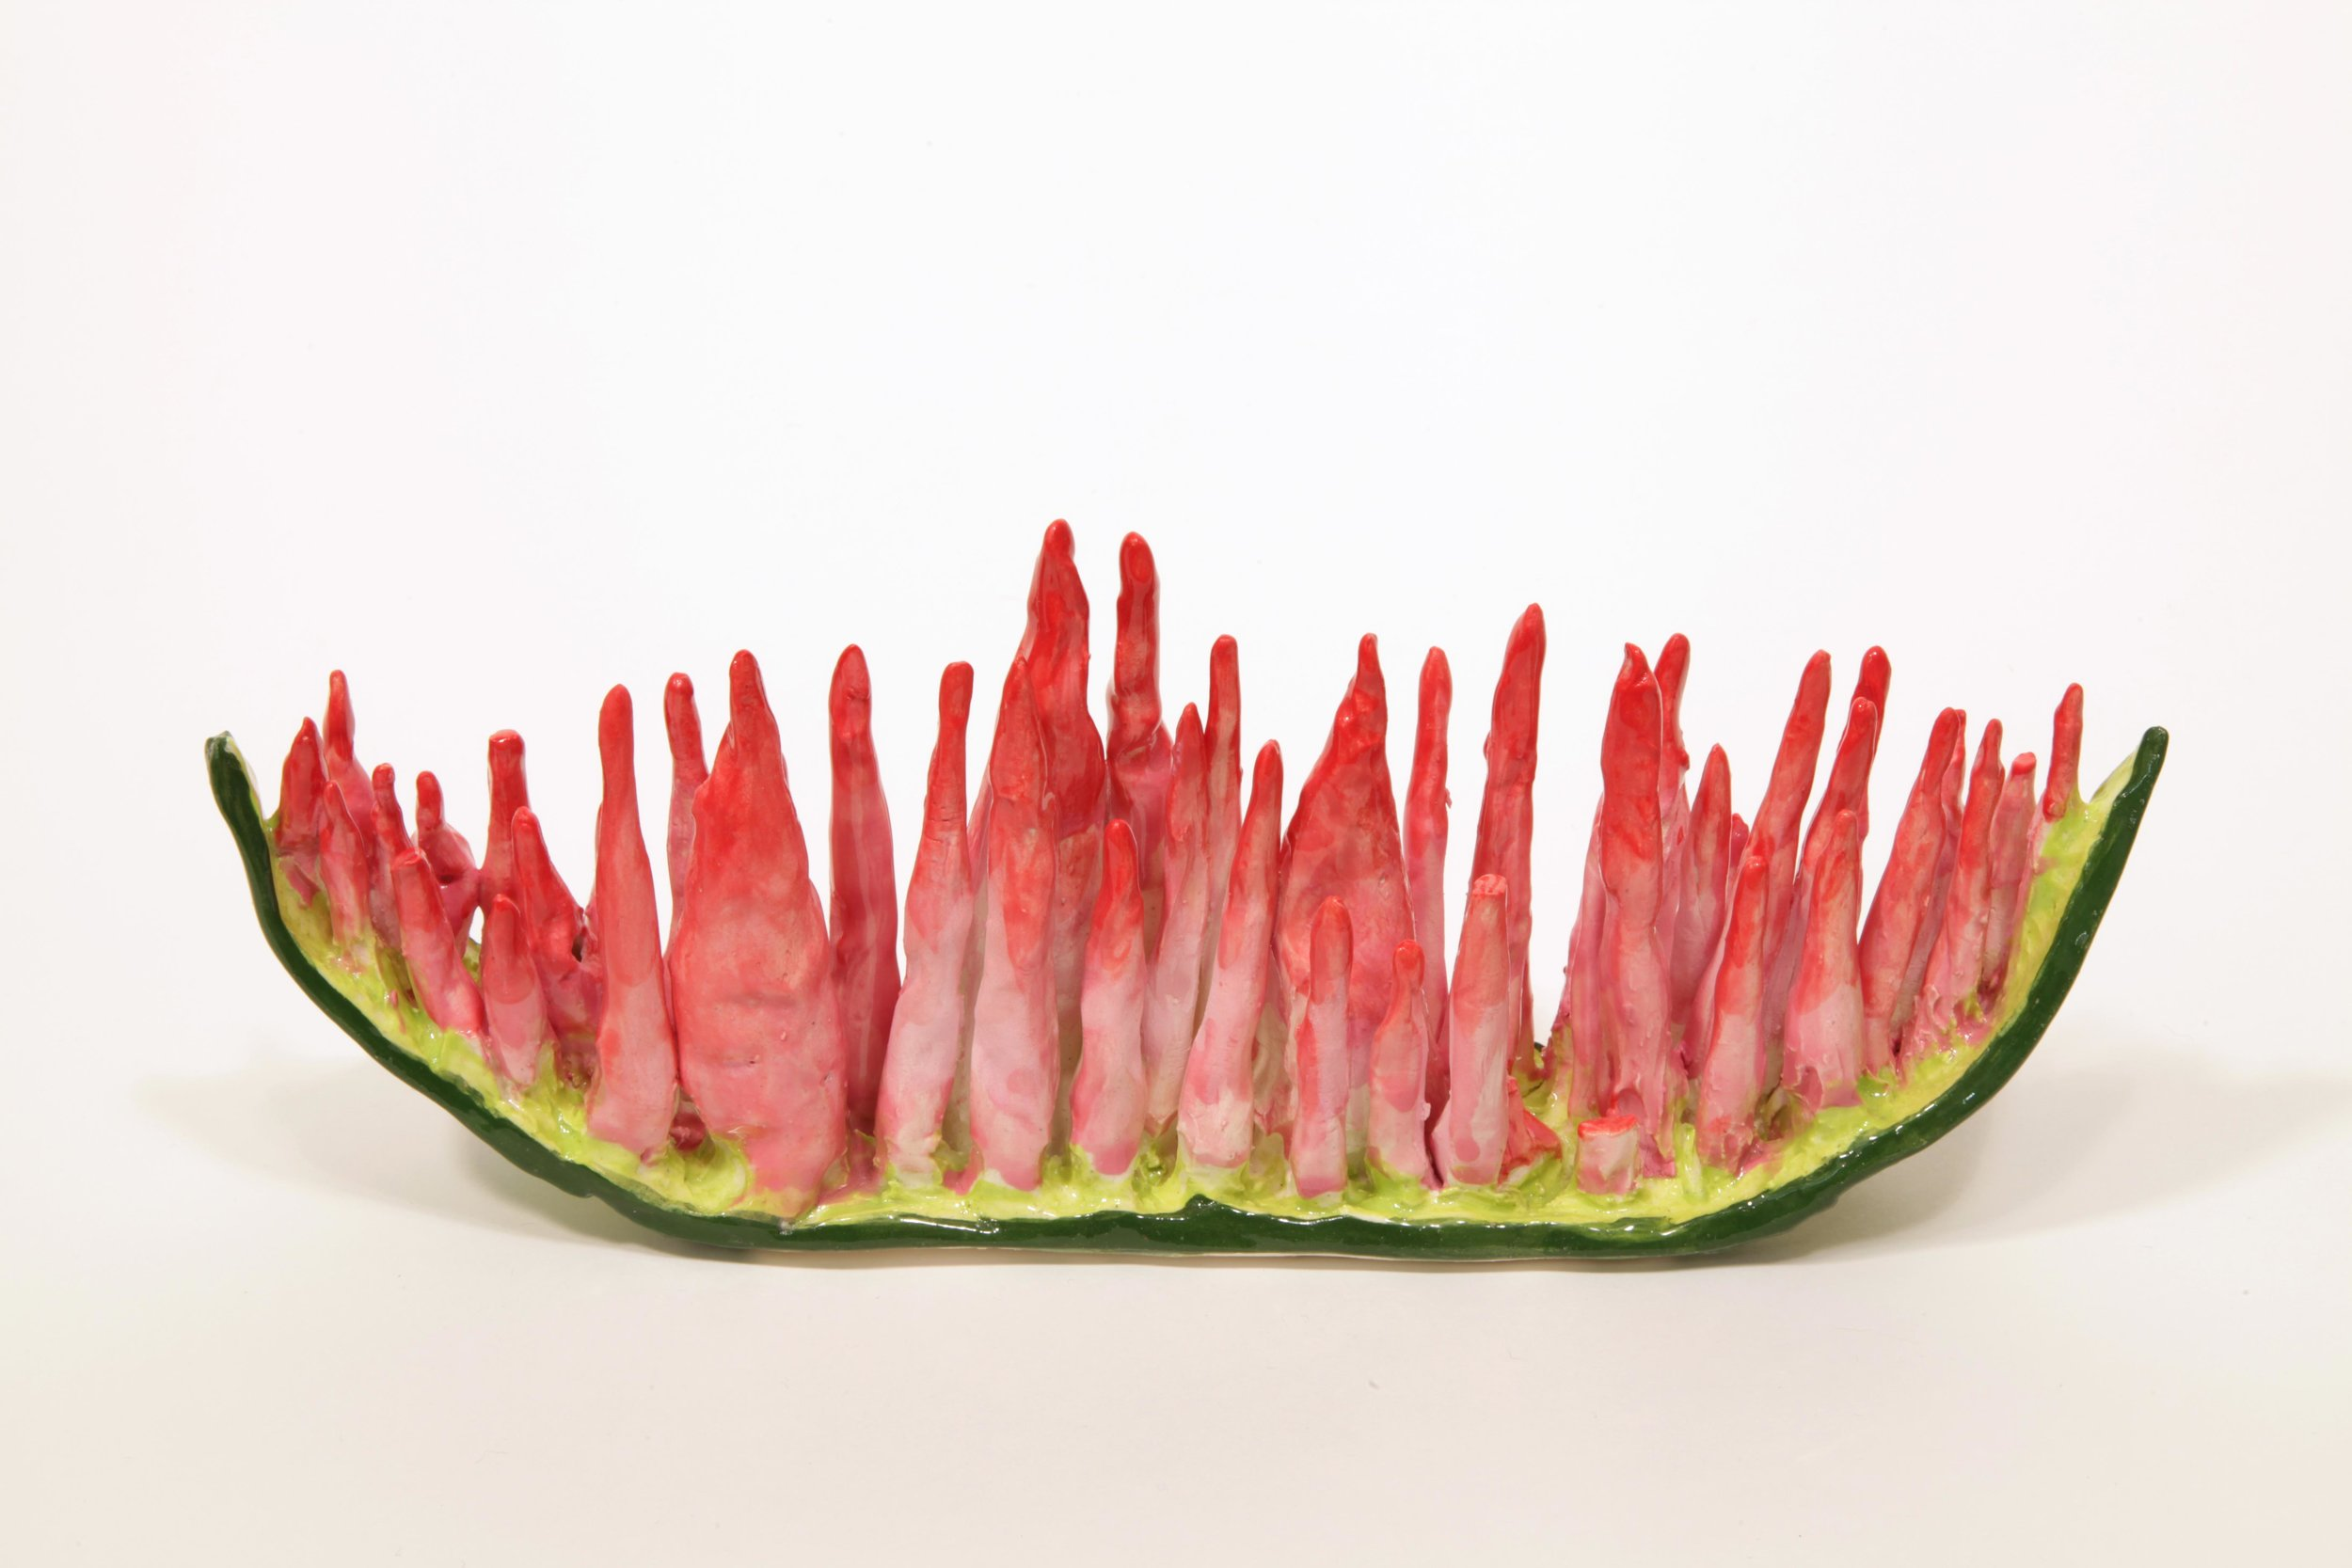 Copy of Watermelon Decay